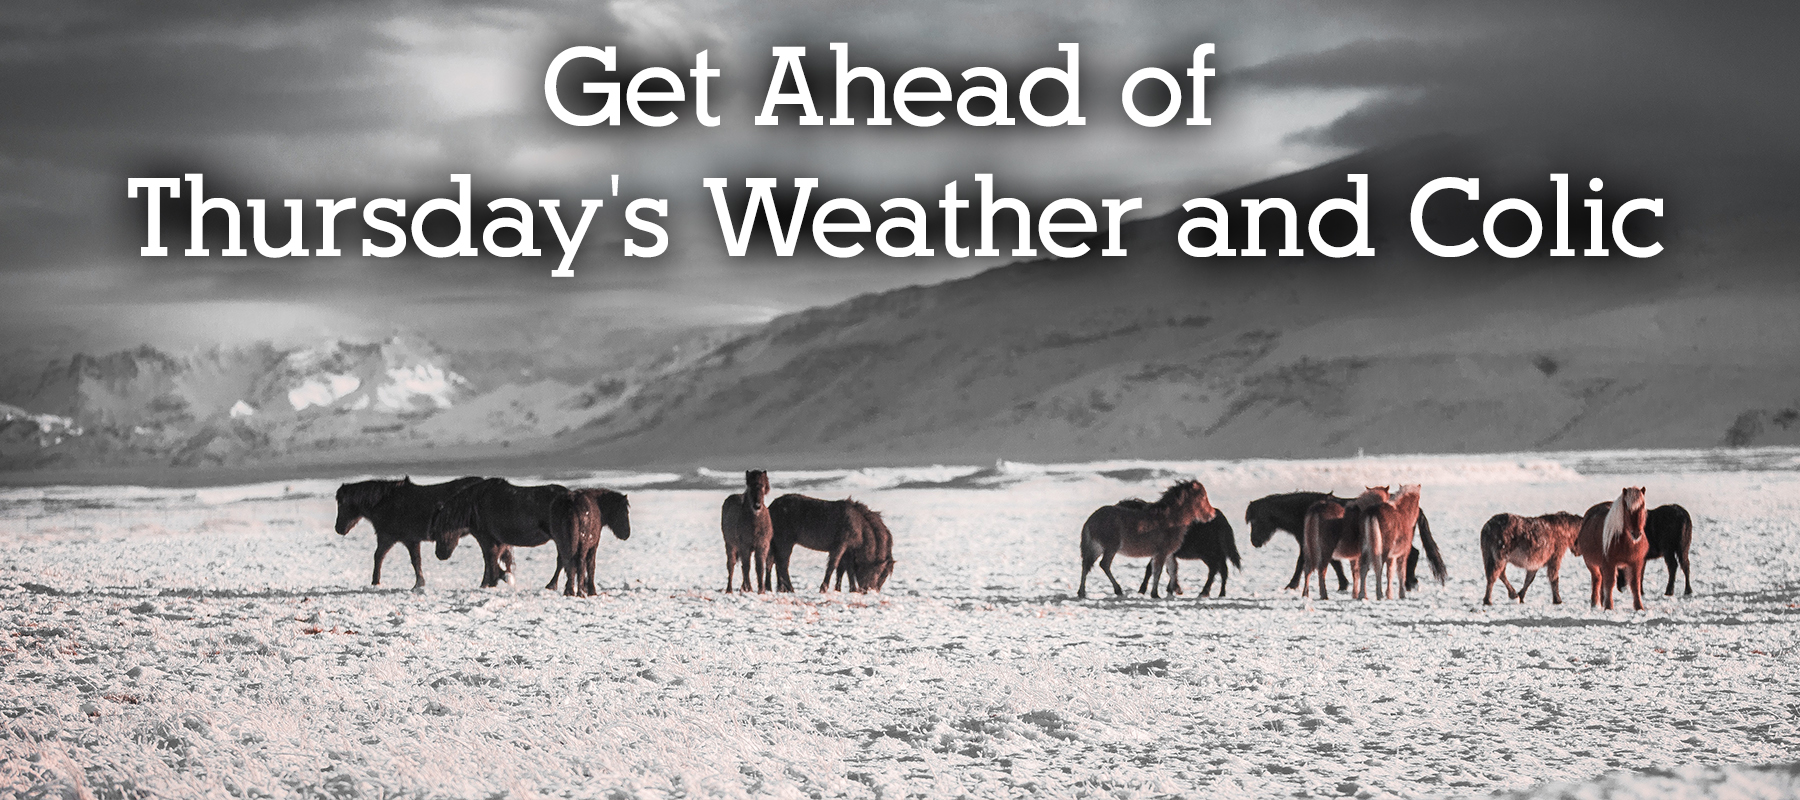 Get Ahead of Thursday's Weather and Colic